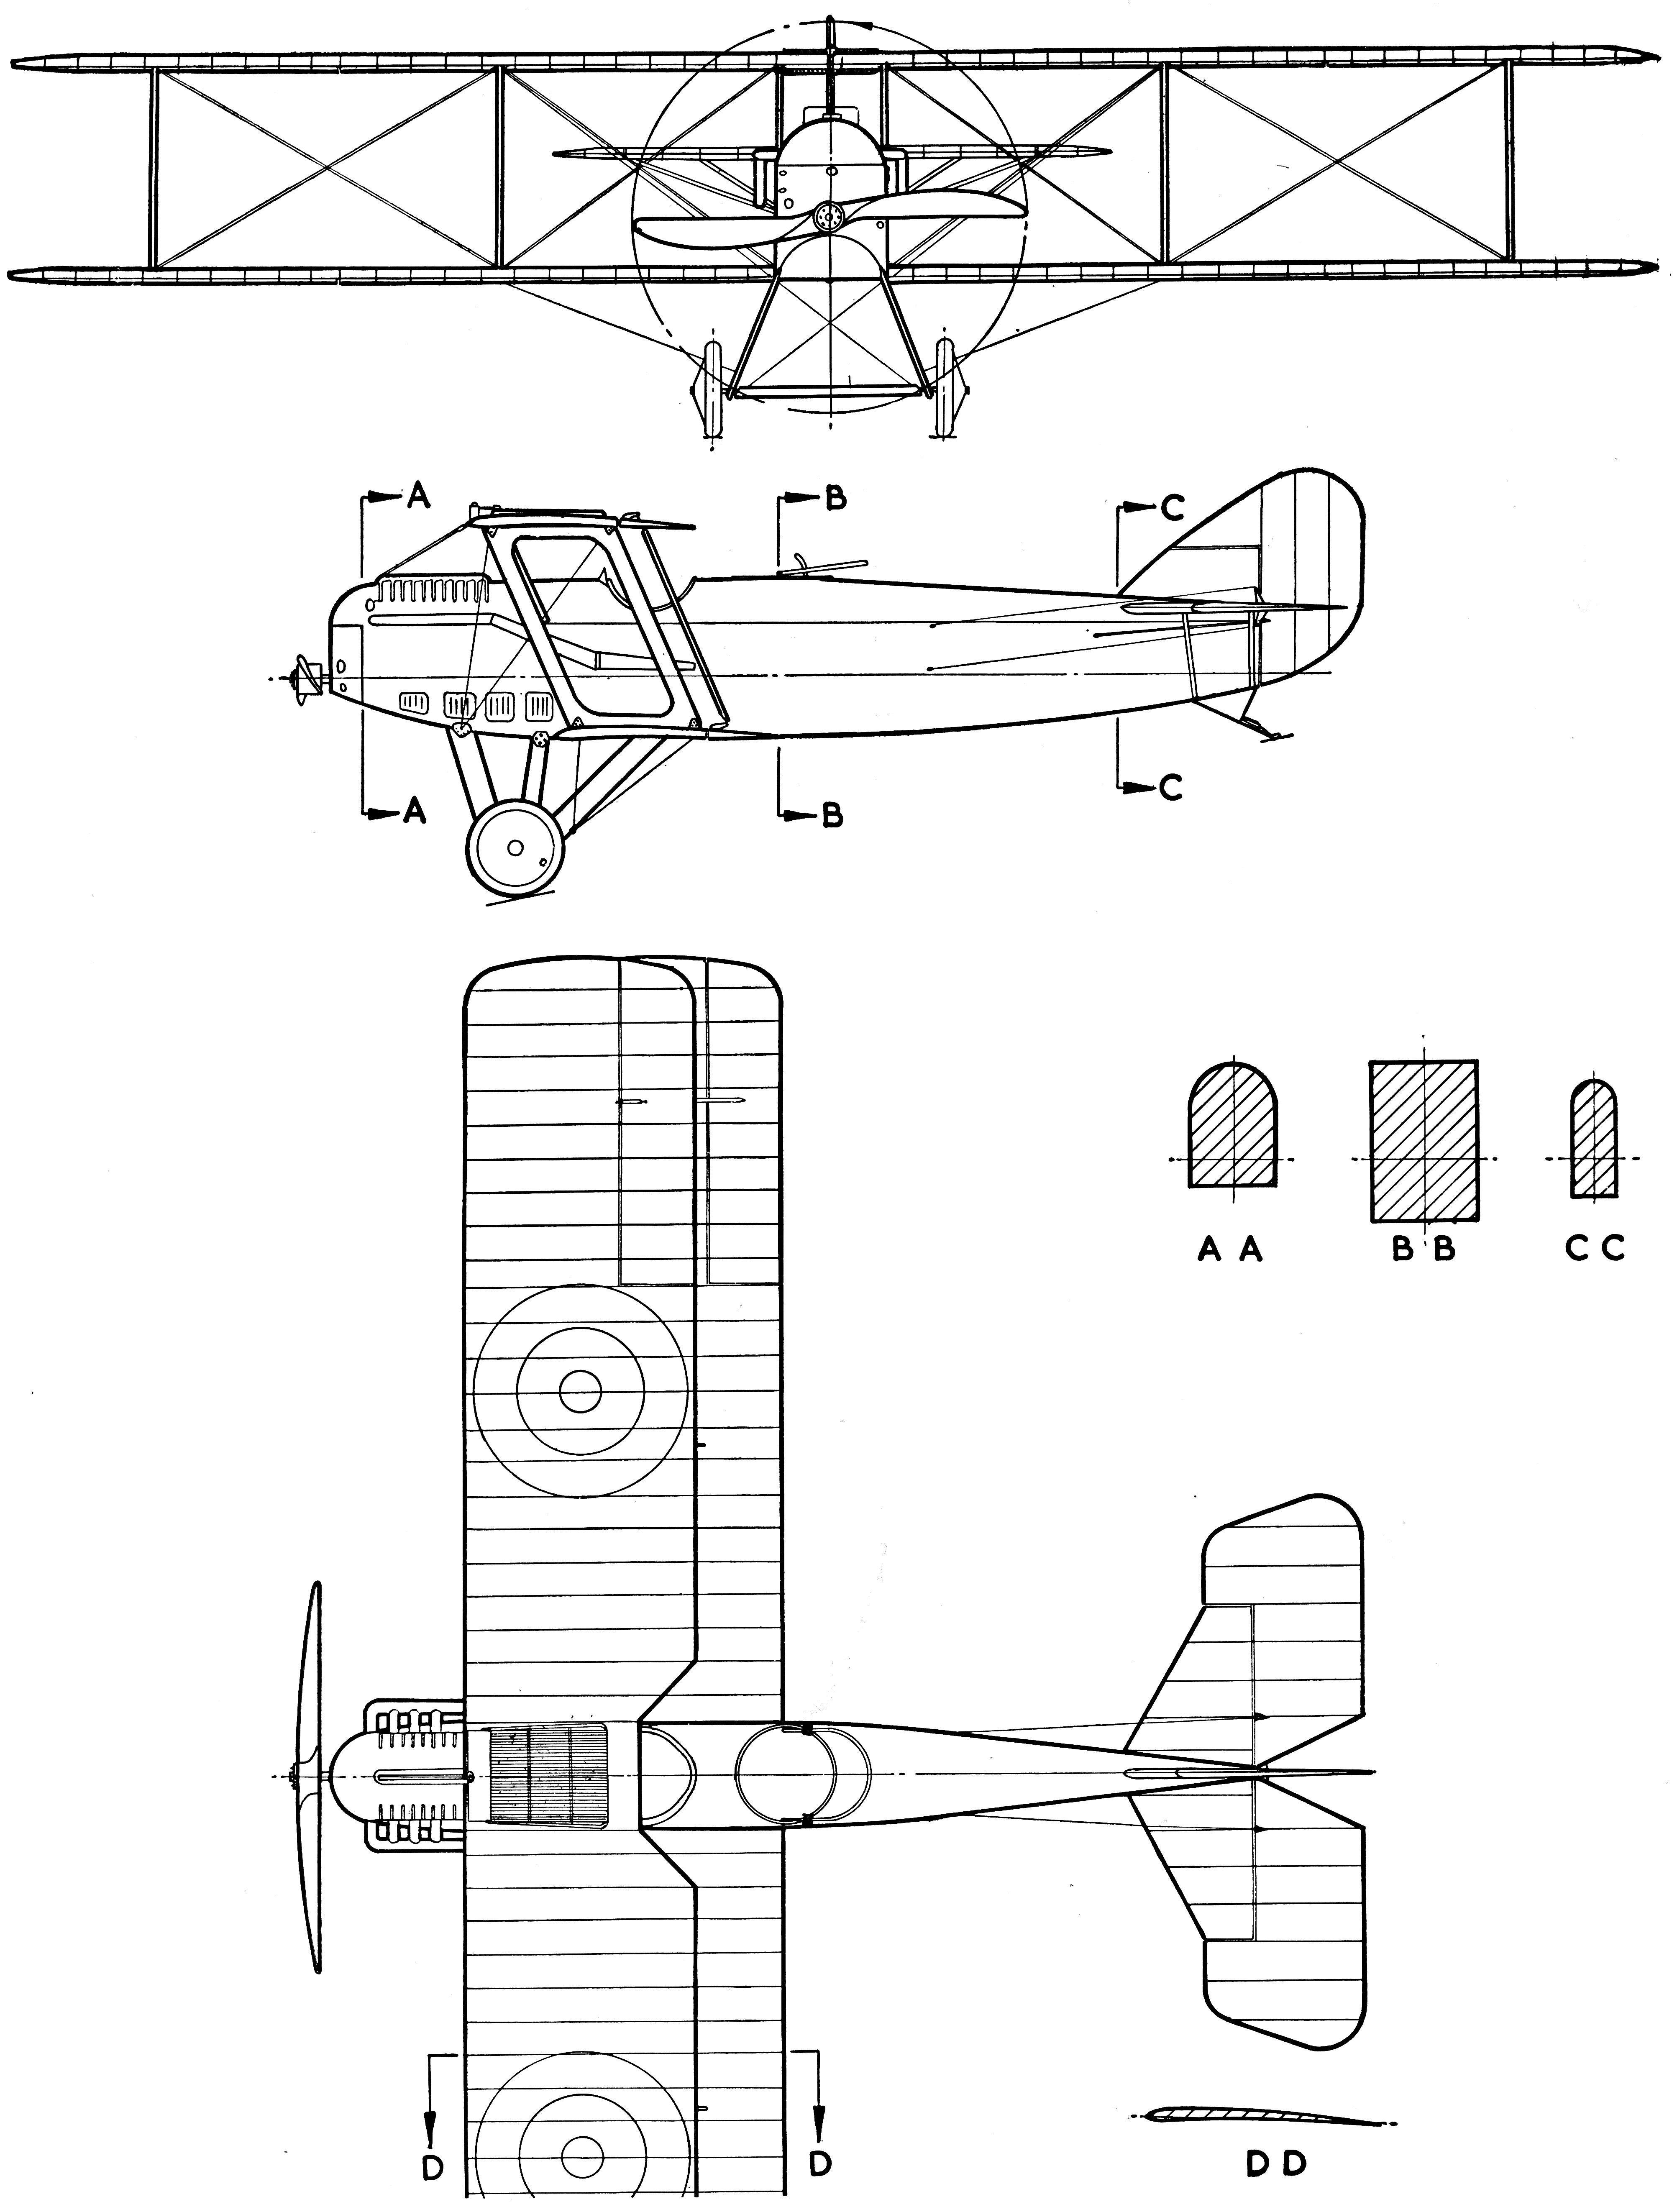 Packard-Le Père LUSAC-11 blueprint